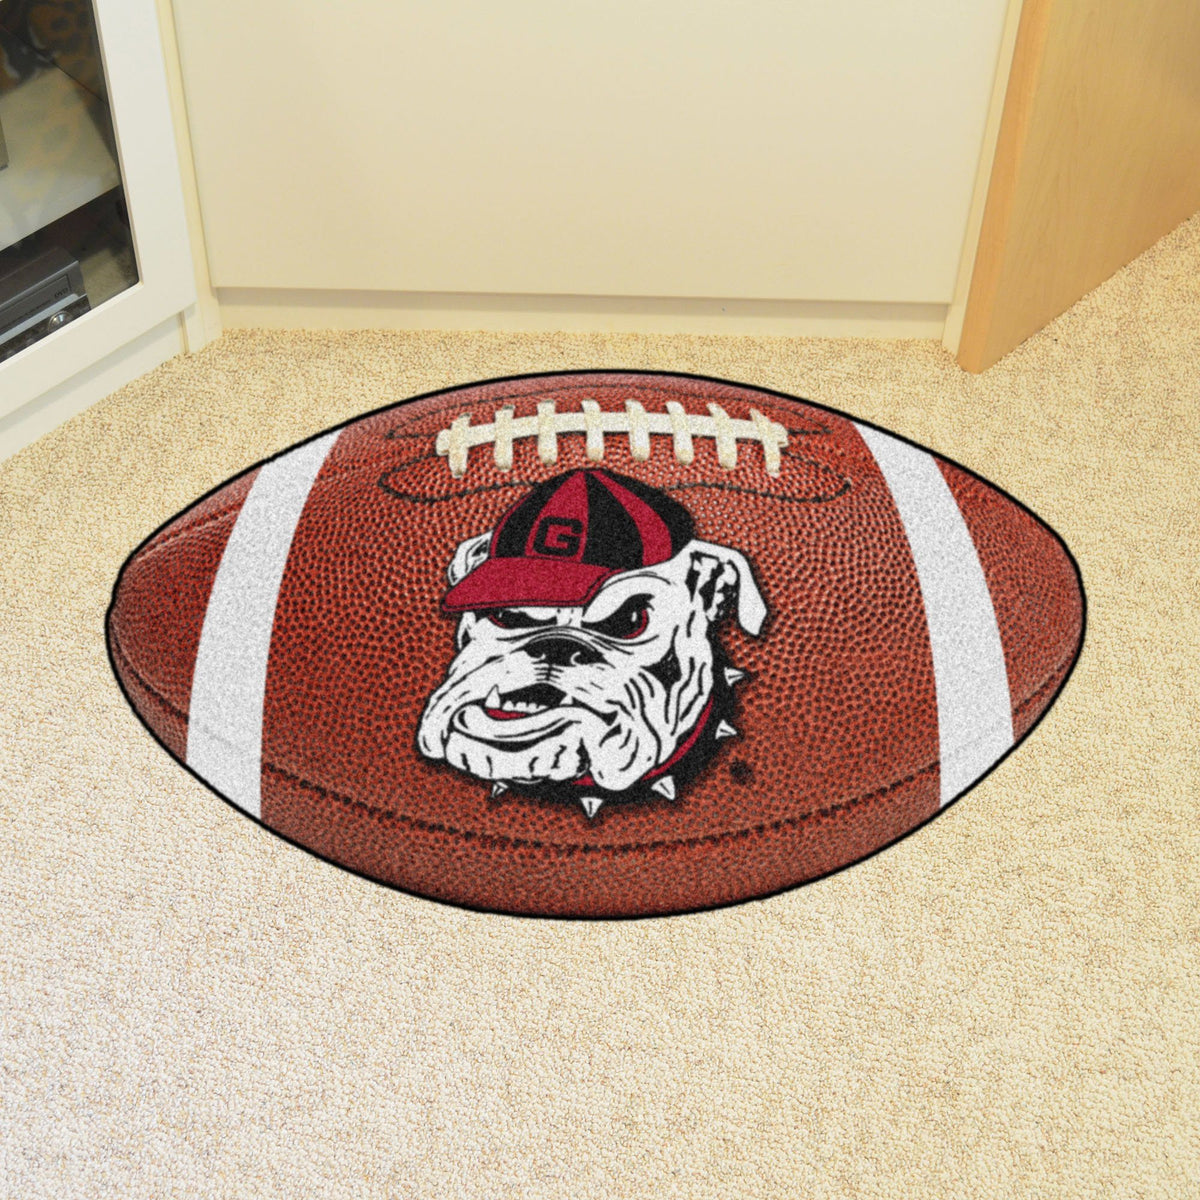 Collegiate - Football Mat: A - K Collegiate Mats, Rectangular Mats, Football Mat, Collegiate, Home Fan Mats Georgia 2